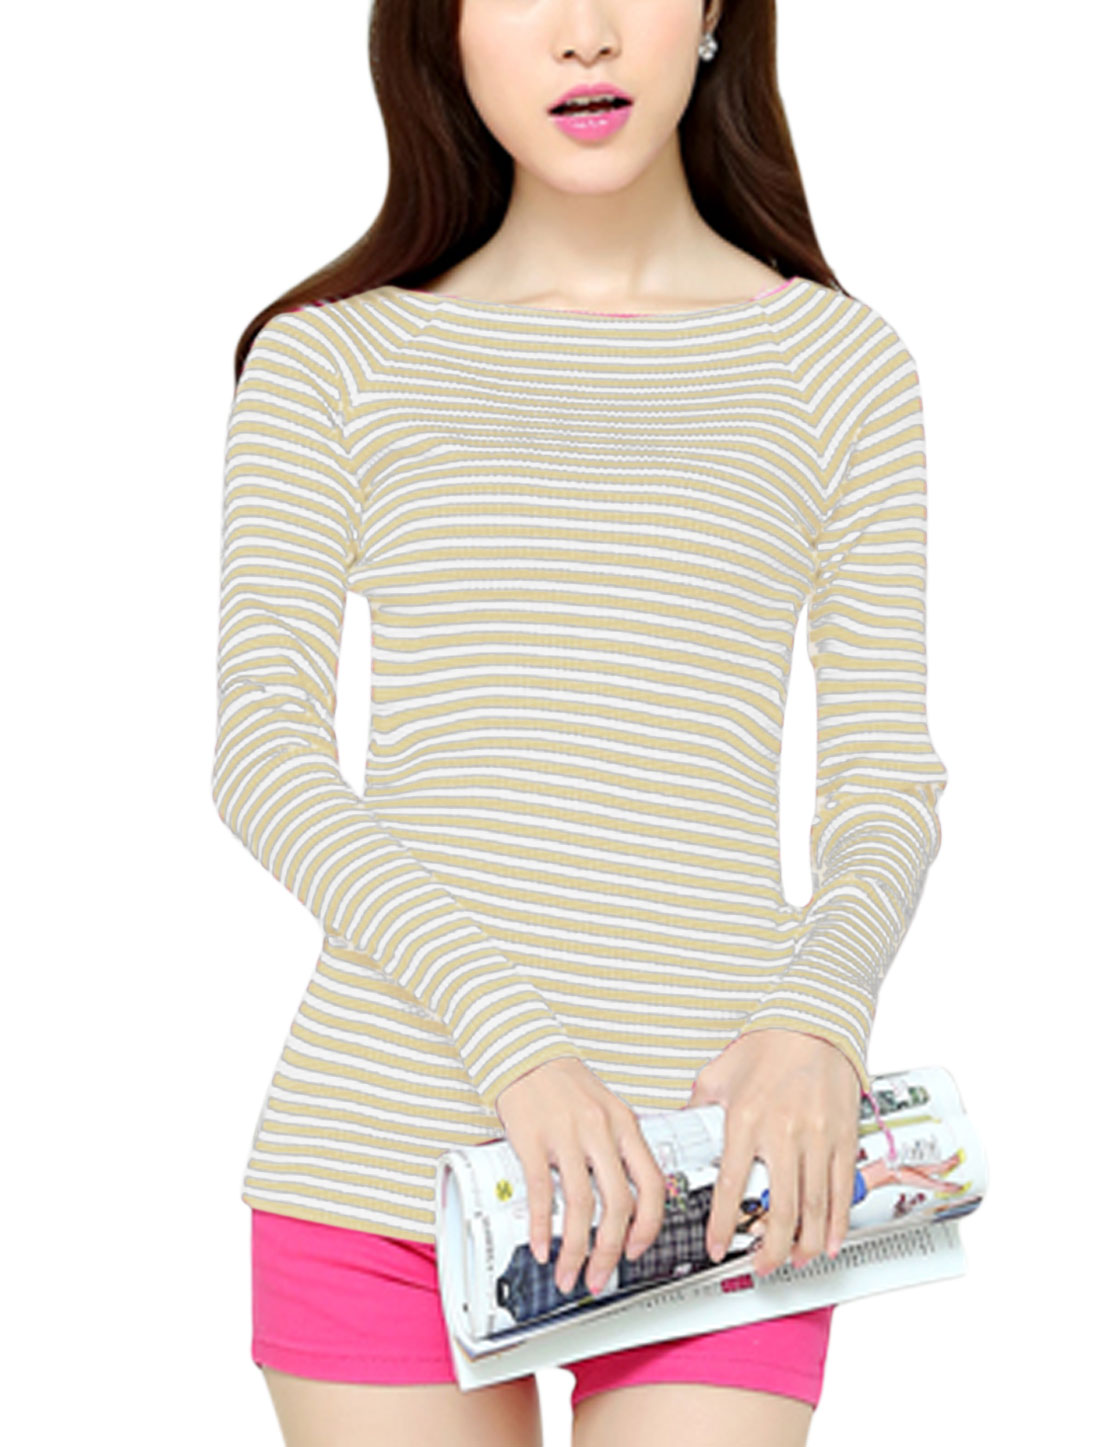 Woman Long Raglan Sleeves Stripes Slim Fit Beige White Knit Shirt XS